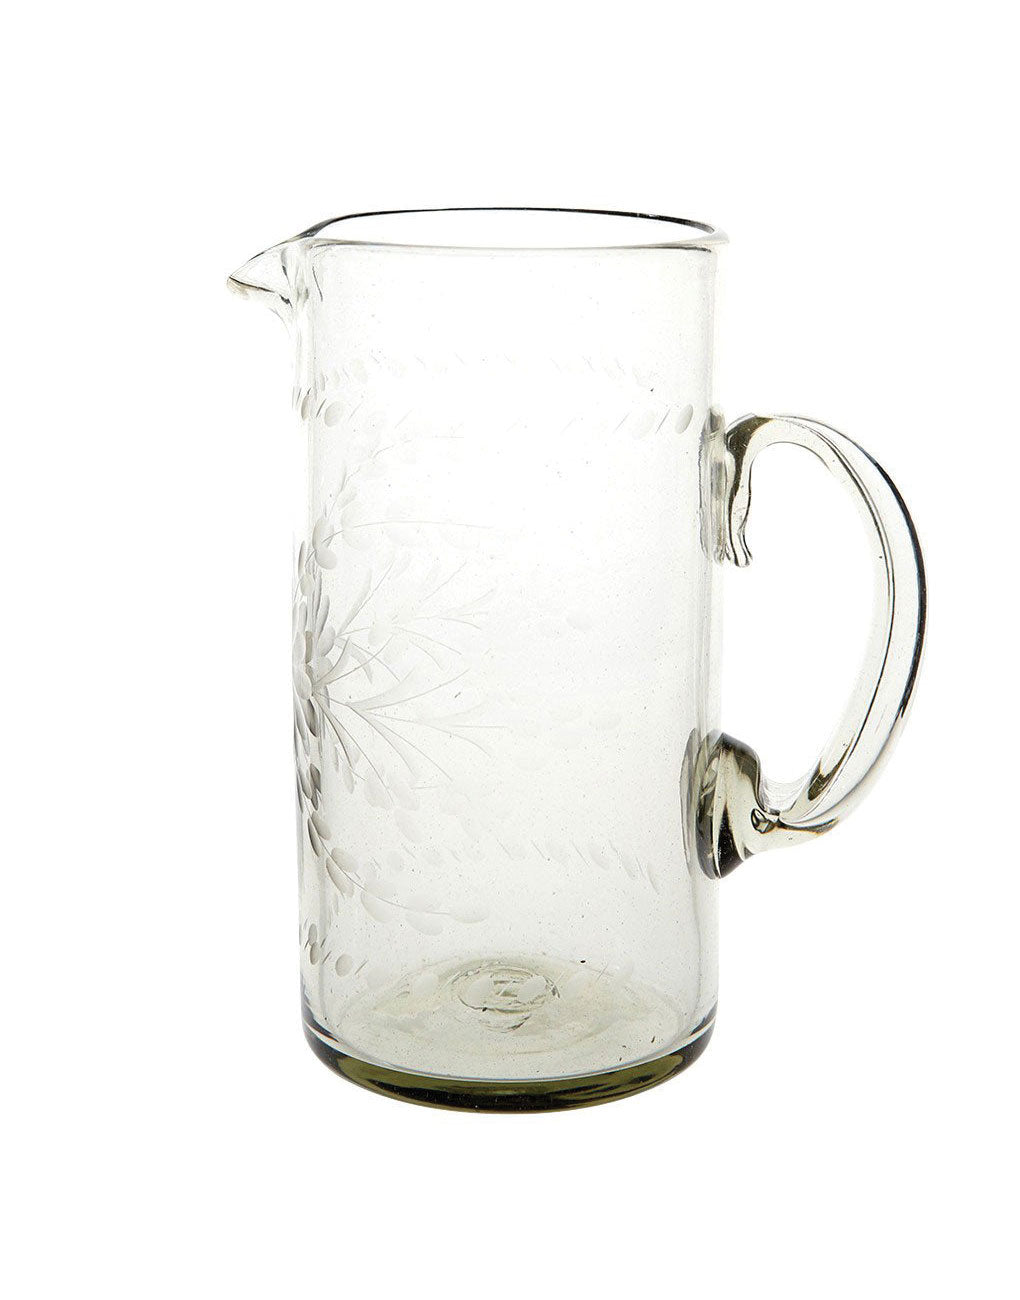 Hand Etched Recycled Tall Glass Pitcher Fair Trade Clear The Little Market